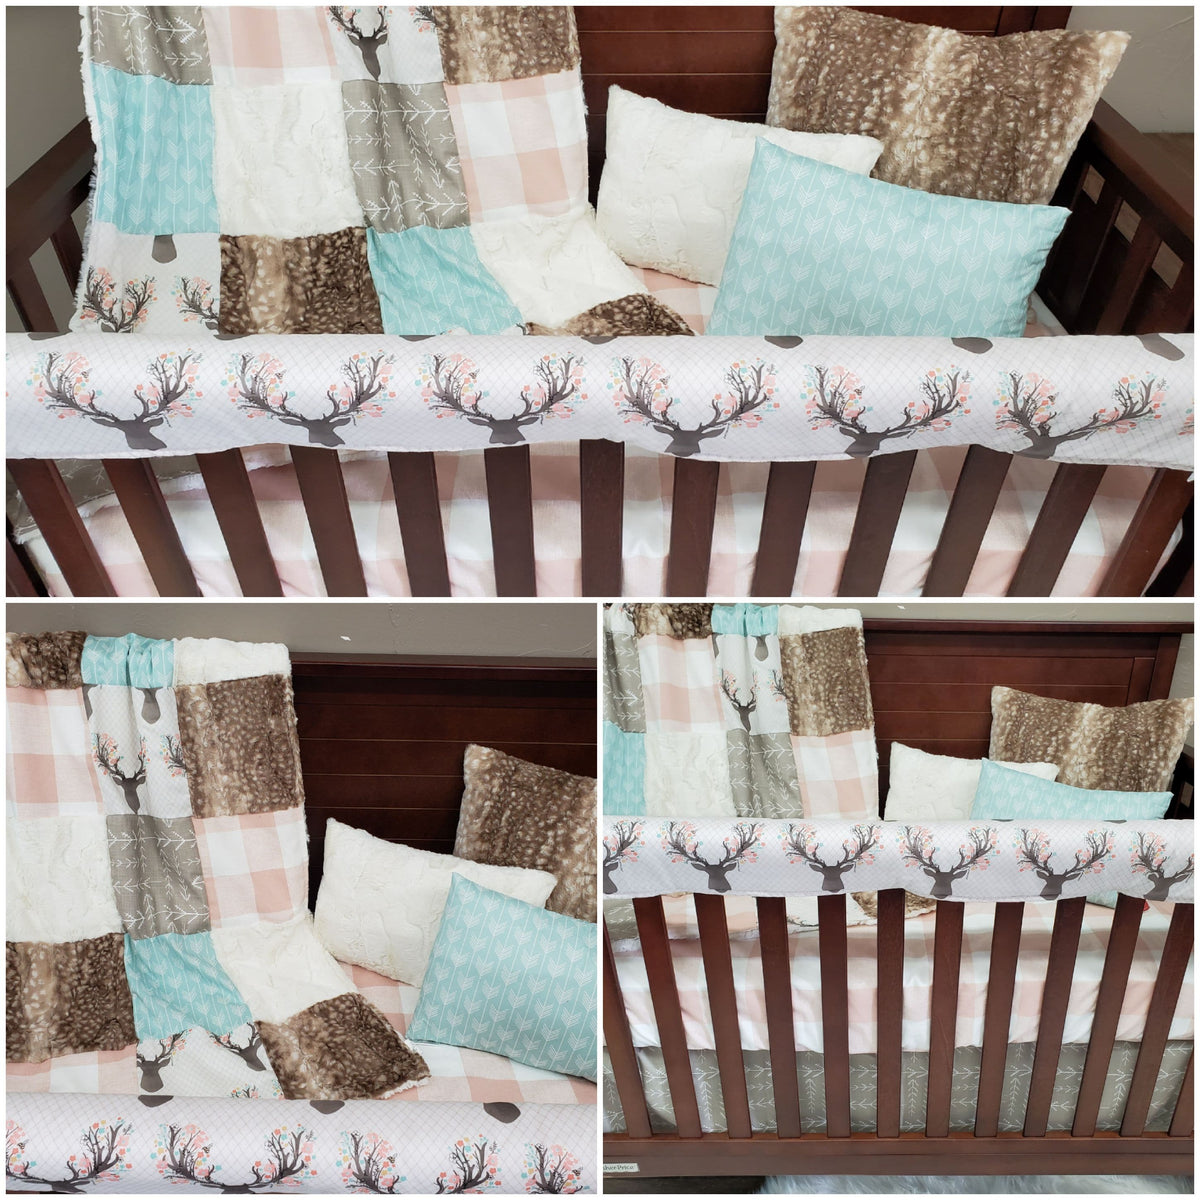 Custom Girl Crib Bedding- Fawn, Peach Buffalo Check, and Arrow Nursery Collection